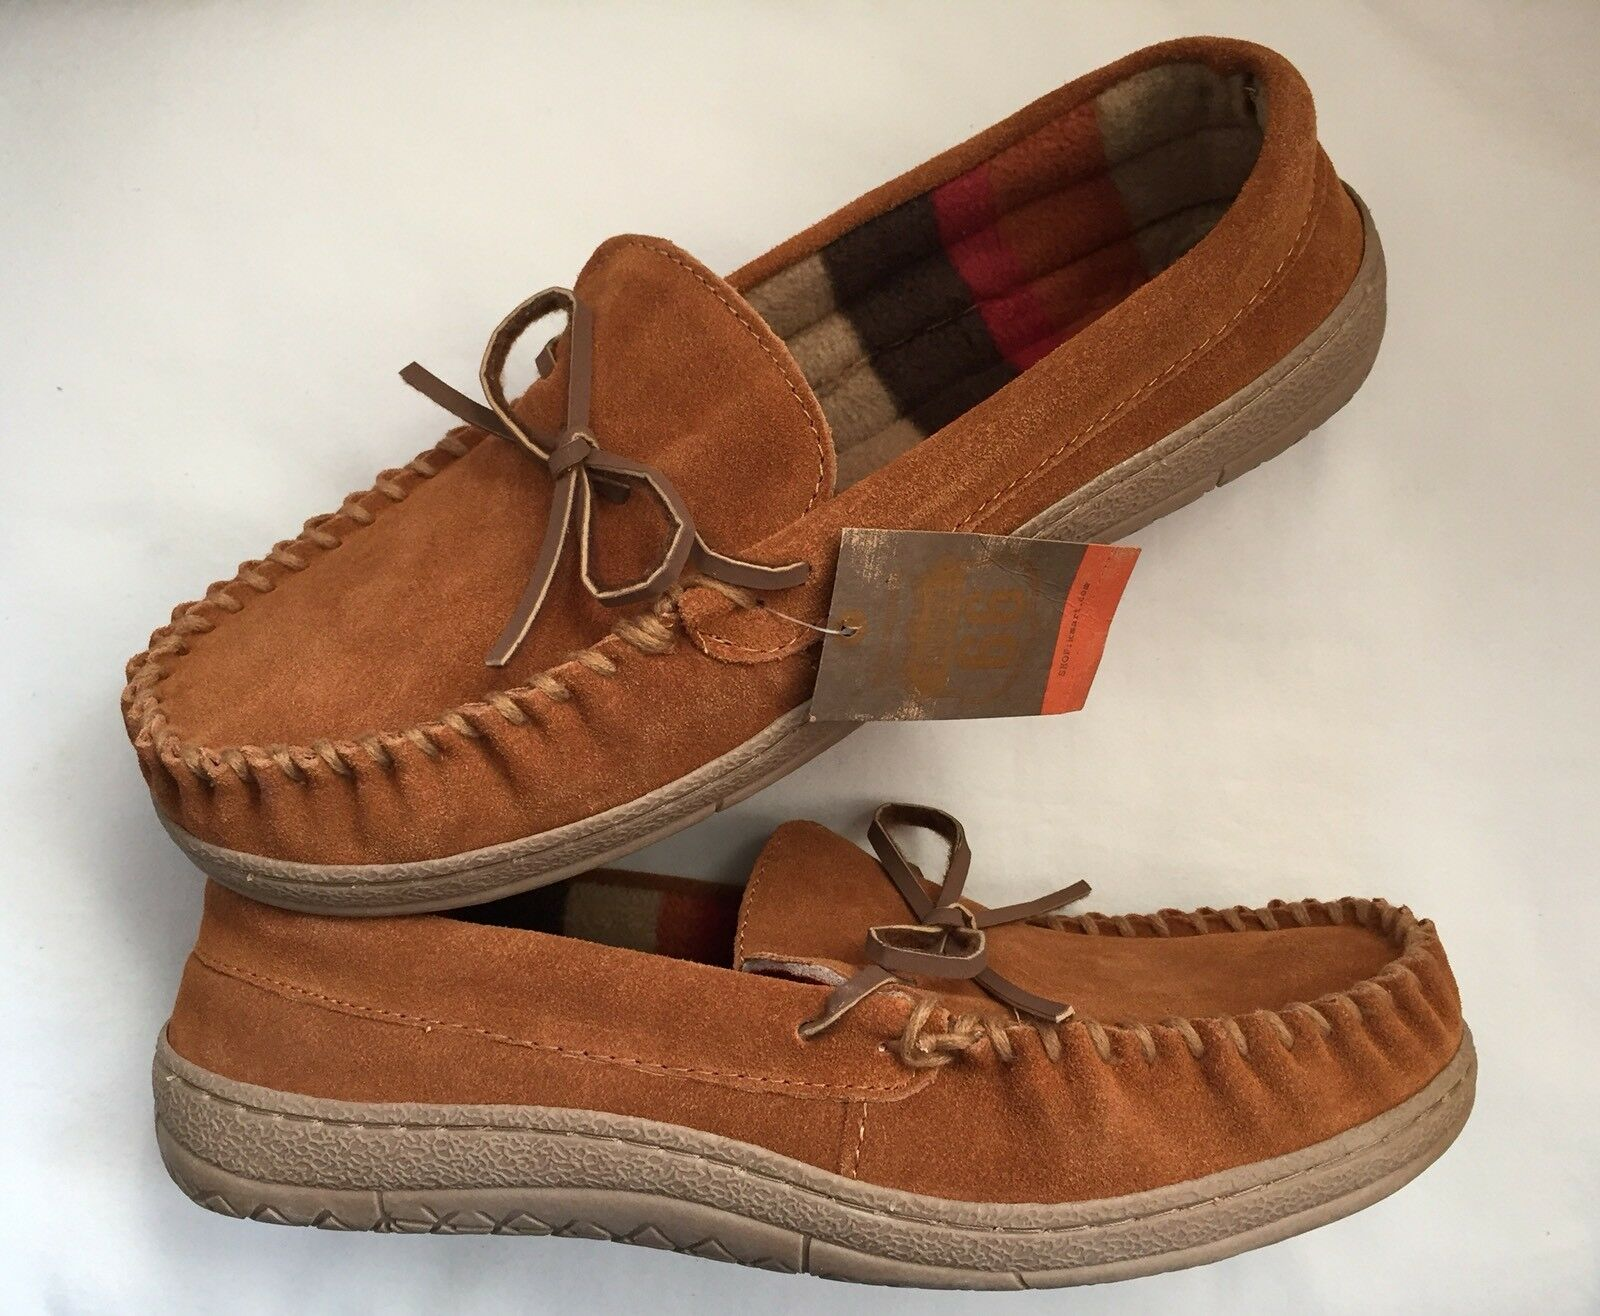 Route 66 Jordan Slippers Mens Size 11 Tan Suede Leather Rubber Sole Moccasins